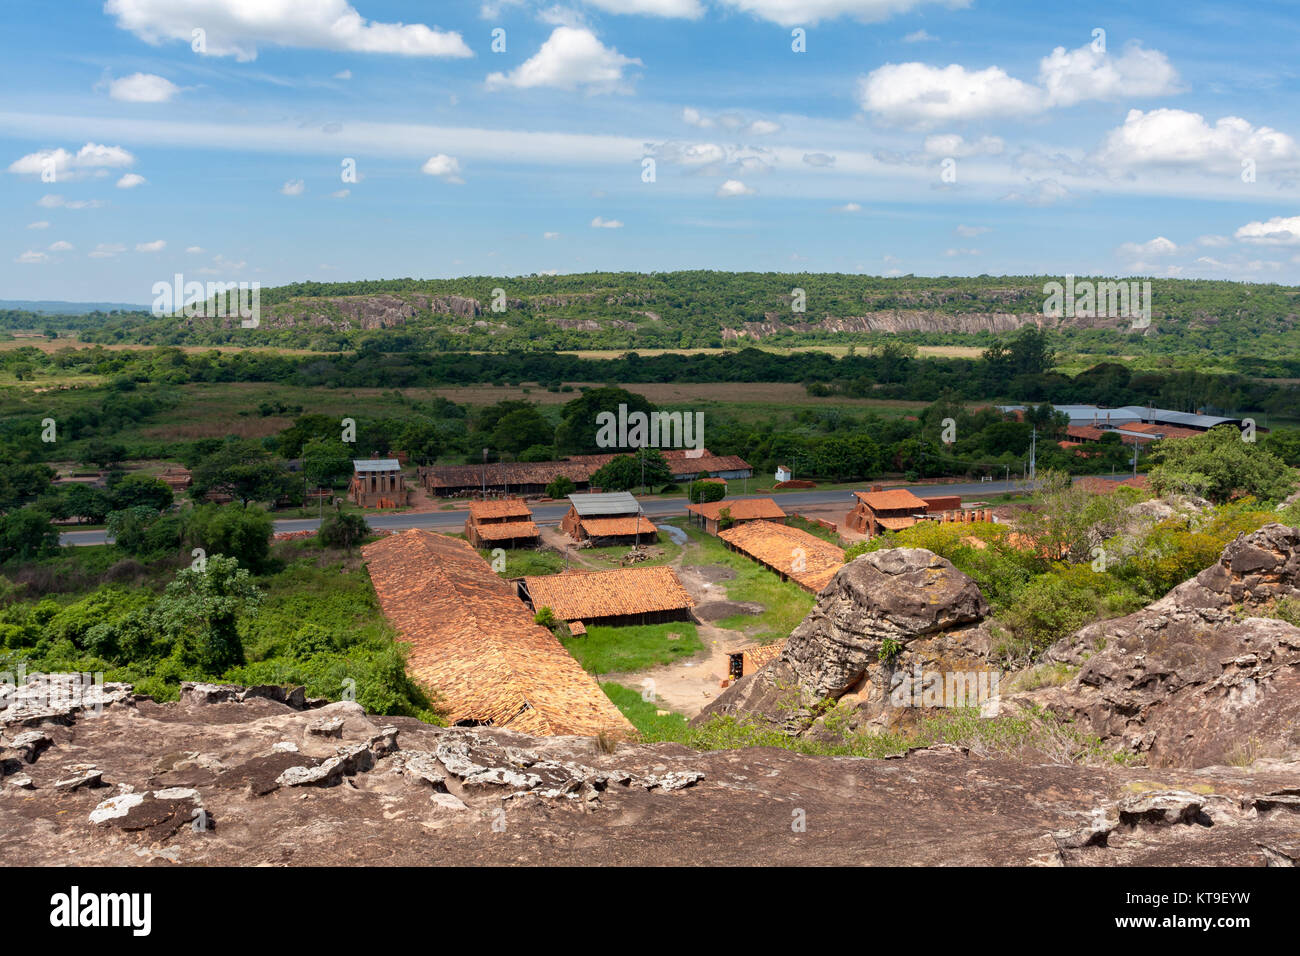 Roofing tile and bricks traditional operations factories and wood fired kilns, Tobati District, Cordillera Department, - Stock Image